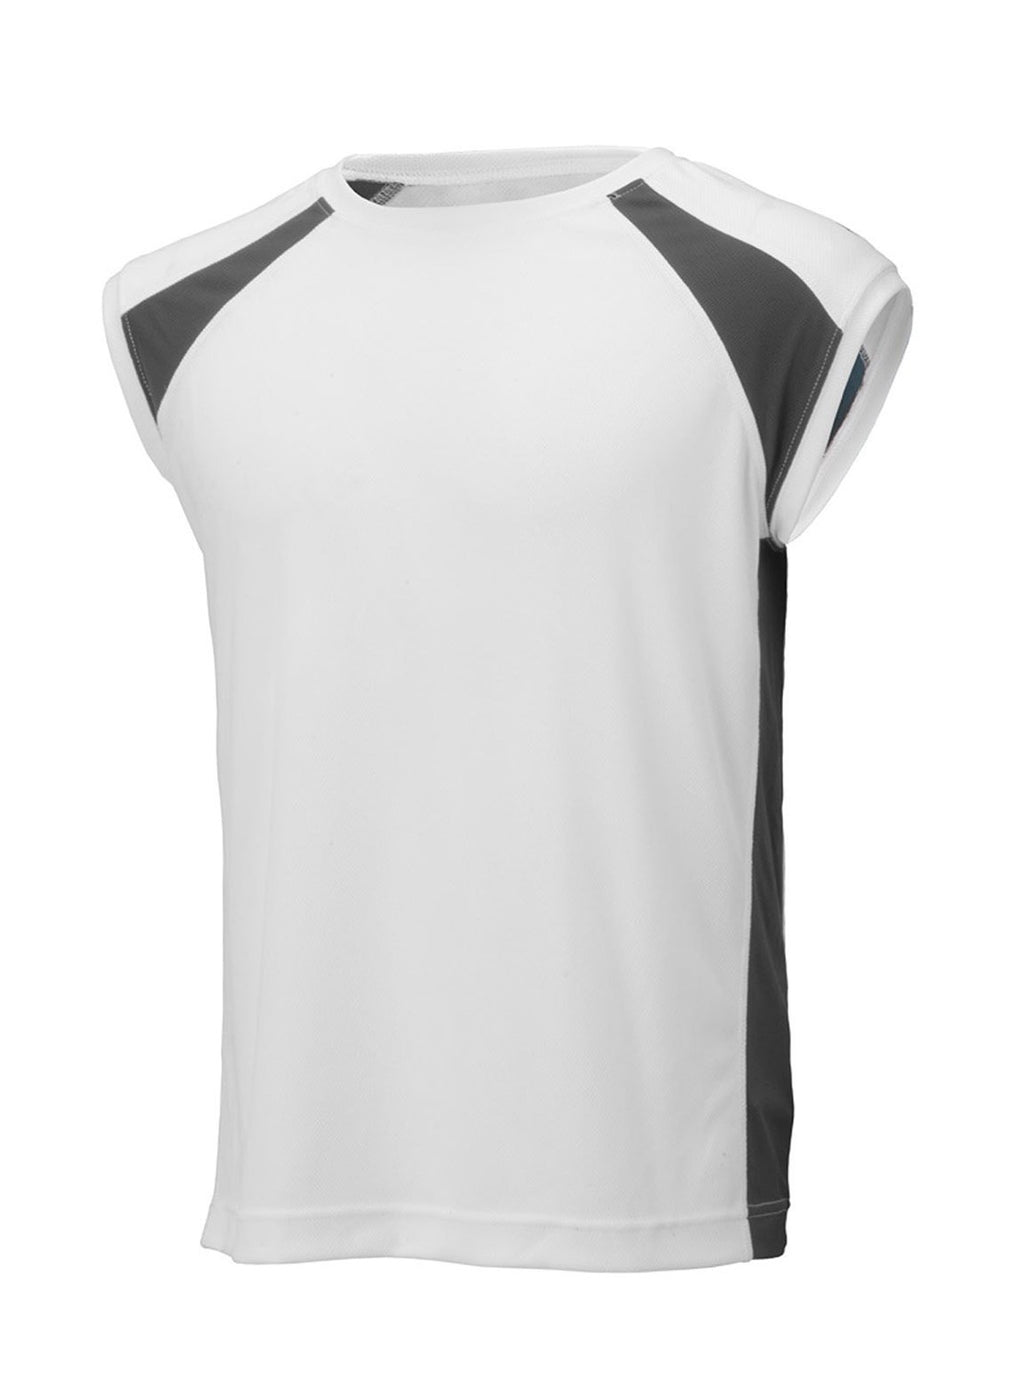 White/Carbon Unisex 2Tone Sleeveless Tee